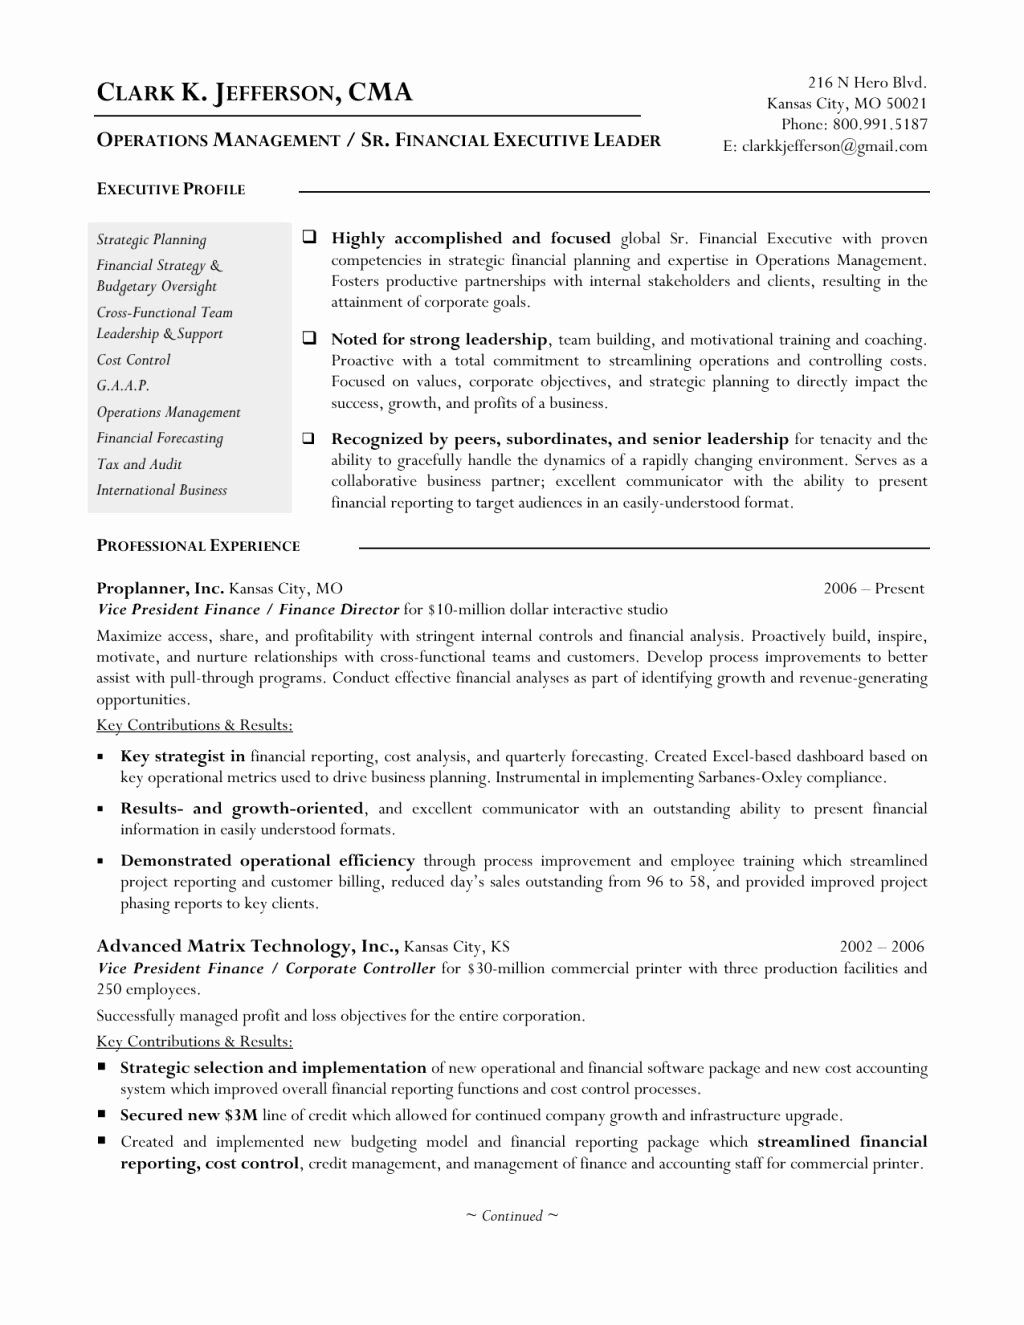 23 Finance Director Resume Examples in 2020 Manager